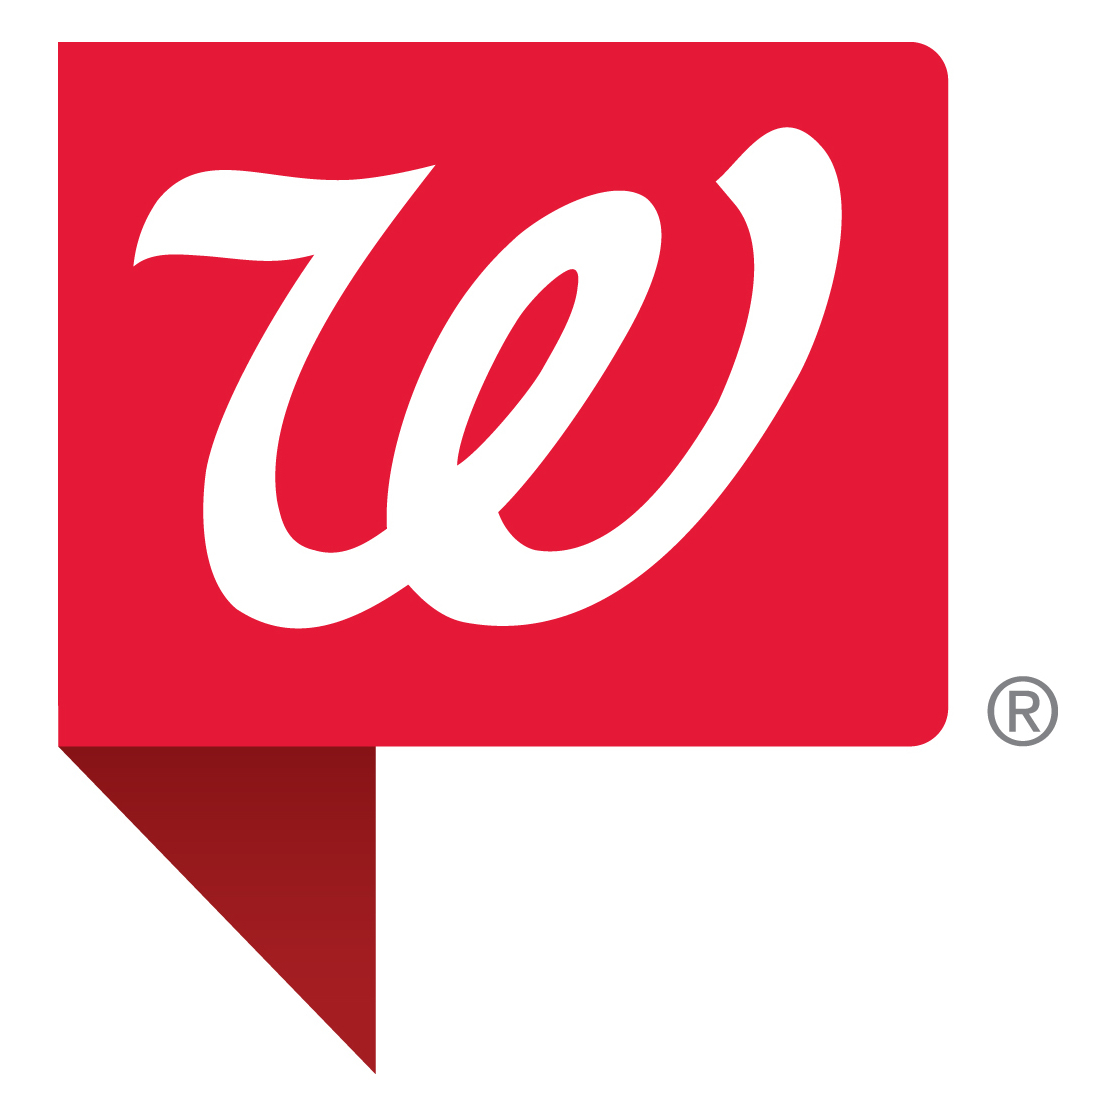 Walgreens - Queen Creek, AZ - Pharmacist